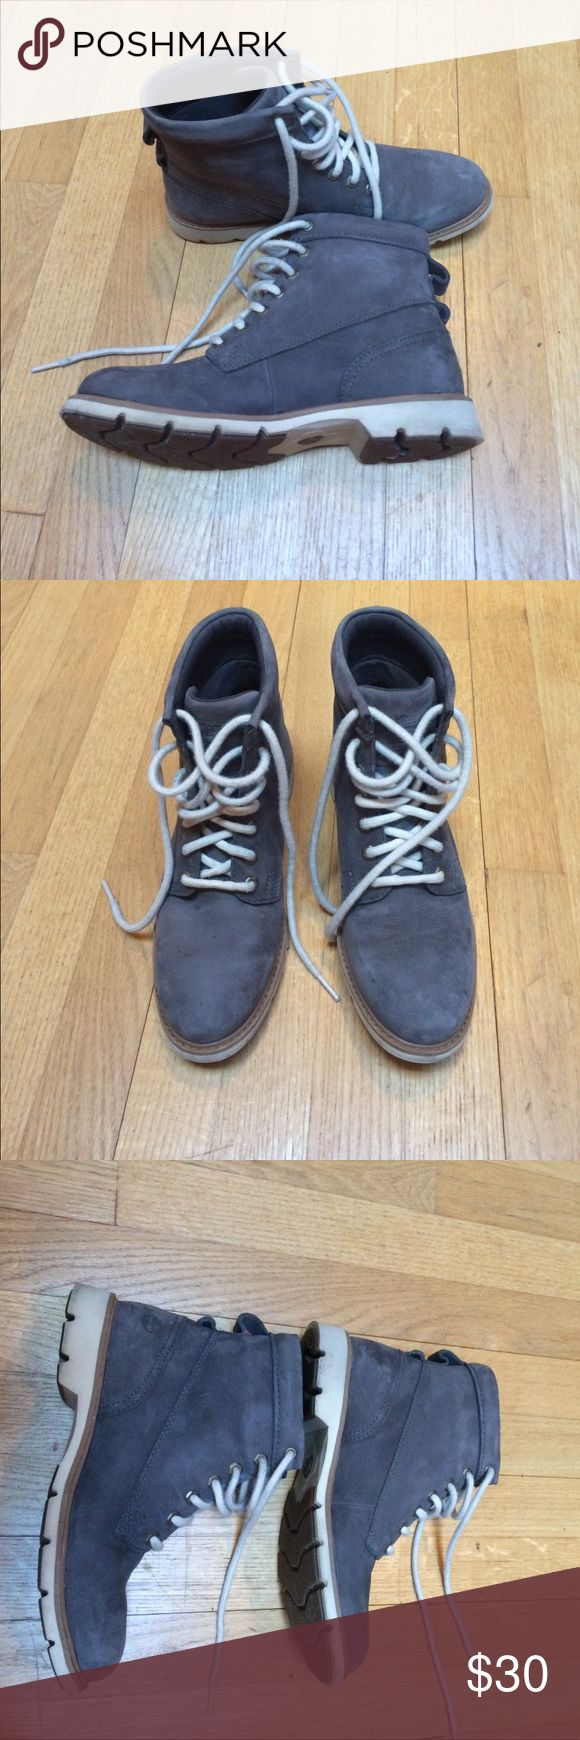 Gray suede Timberland boots Grey suede/soft nubuck leather Timberland boots. Original cream colored laces. Gently used. Timberland Shoes Ankle Boots & Booties